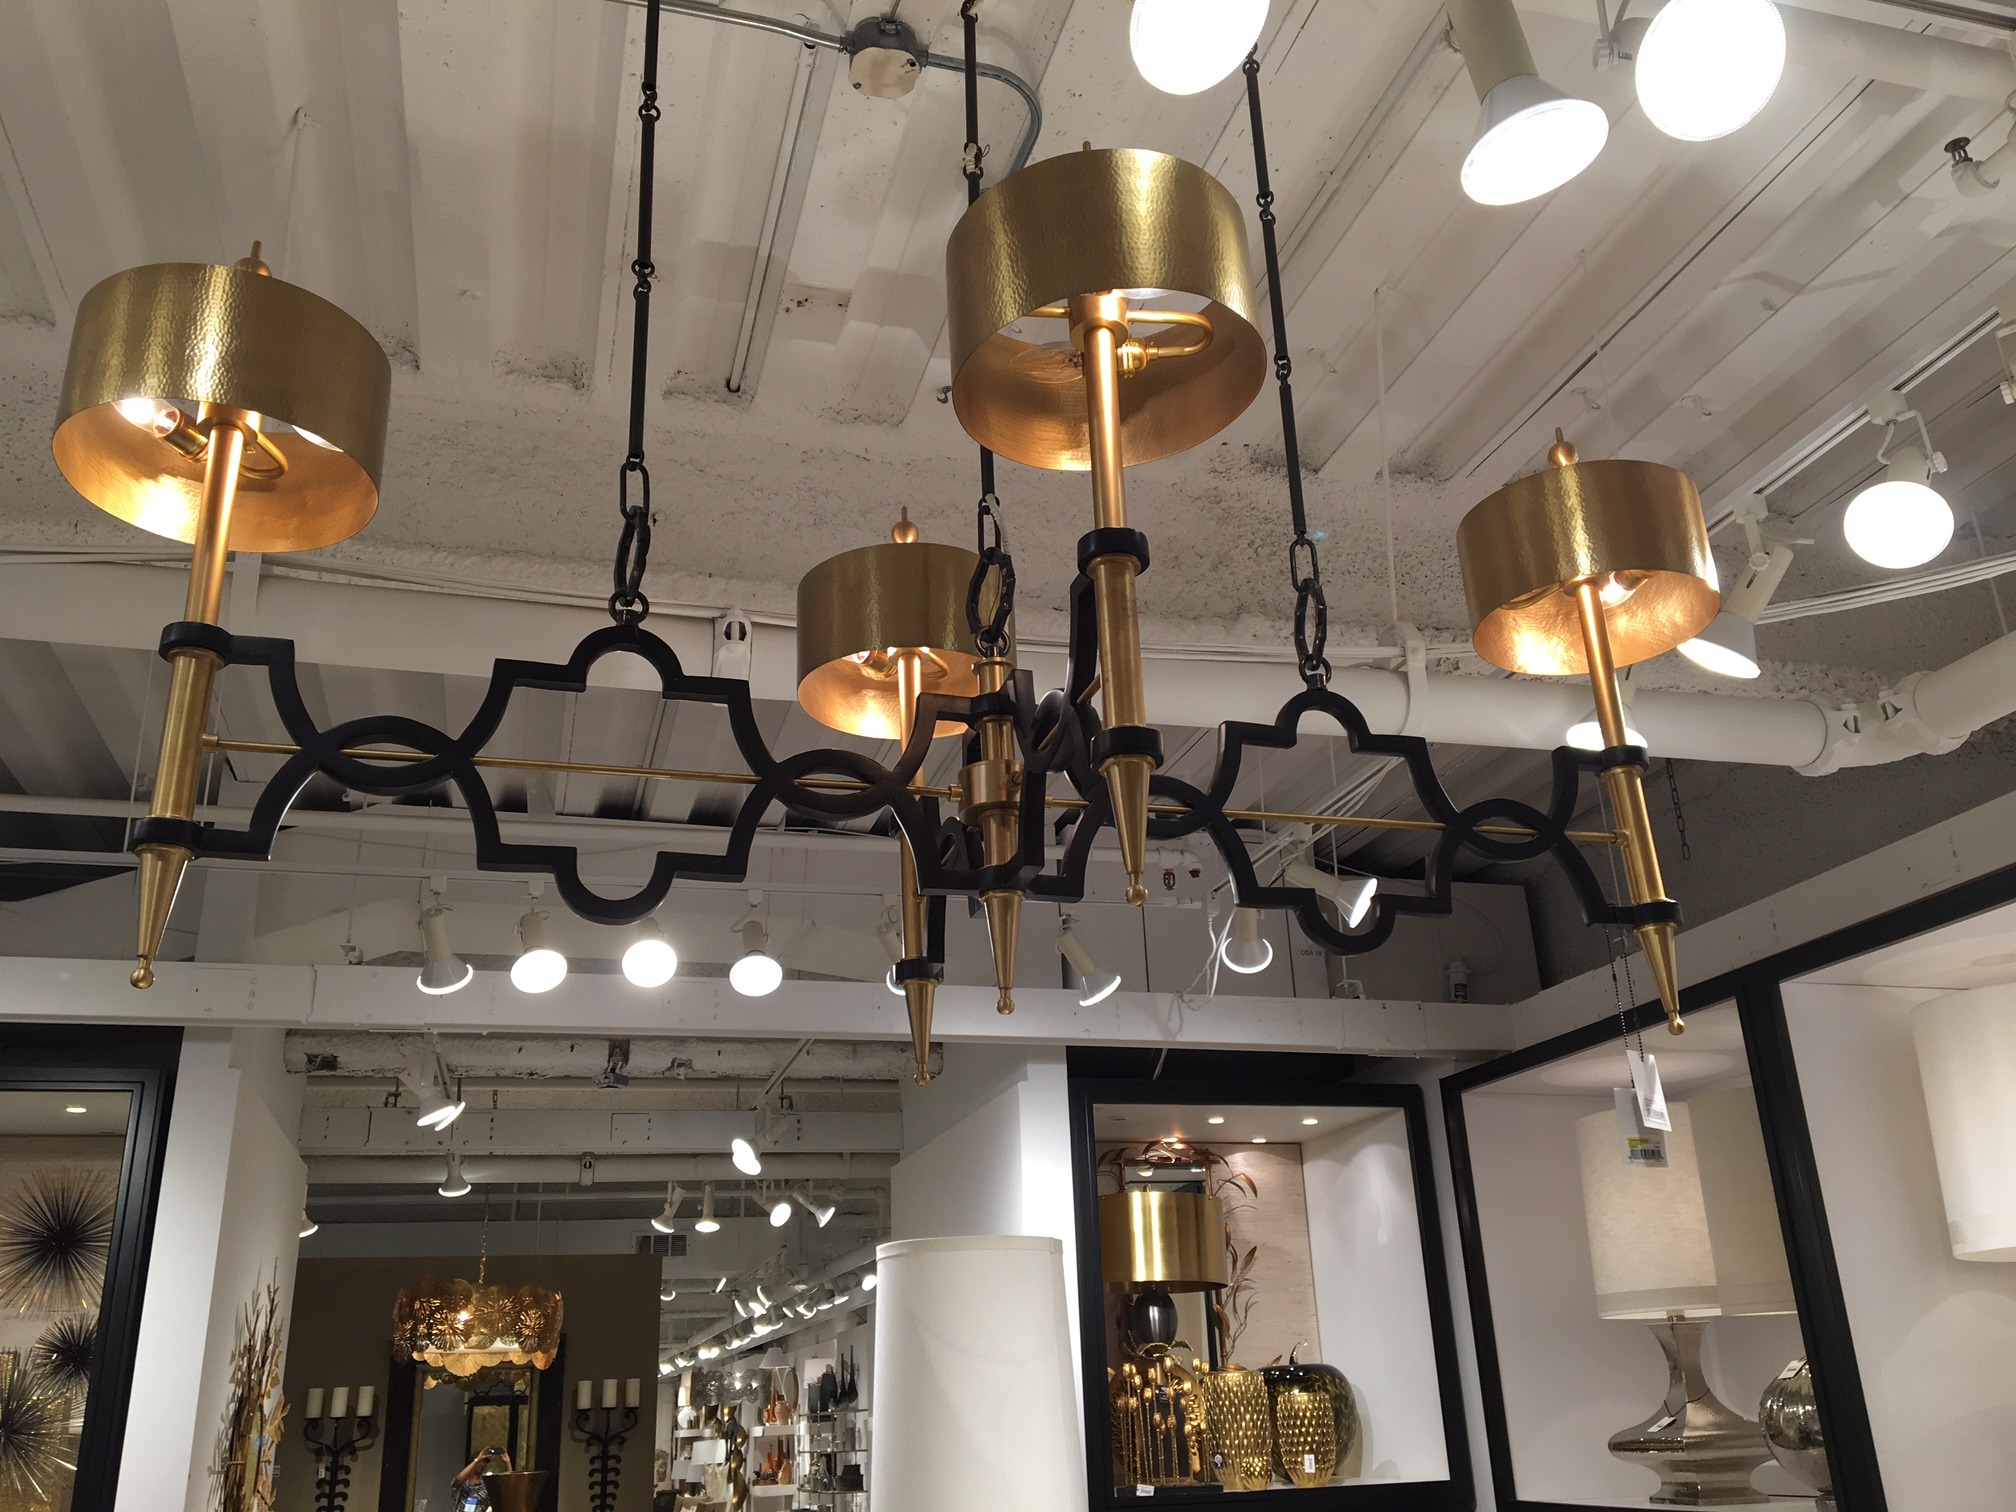 ideas category lantern designer types chandelier chandeliers modern drum pendant light tequestadrum on mount geometric blue small style flush with lamp lighting shade preeminent lights semi best and